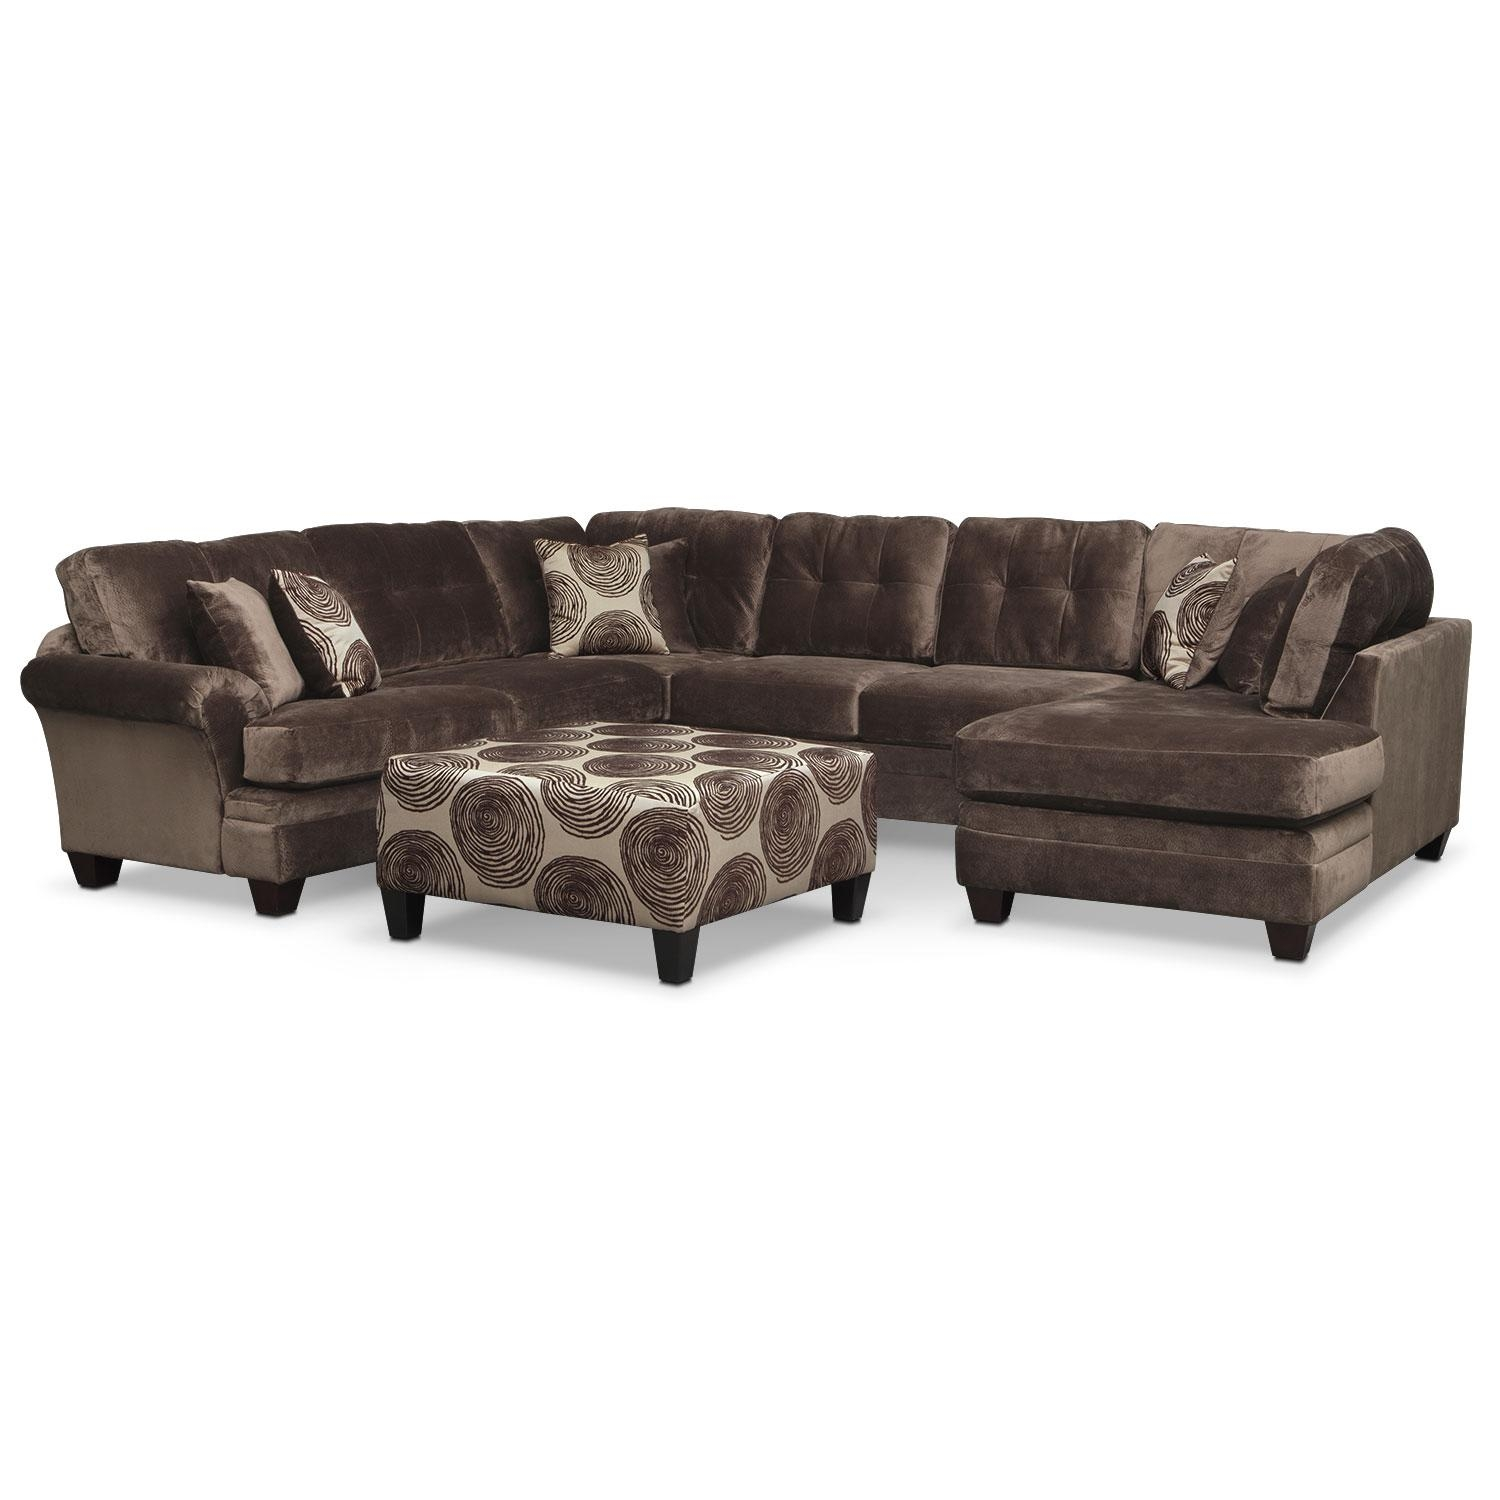 Living Room Furniture Packages | Value City Furniture For Value City Sofas (View 5 of 20)